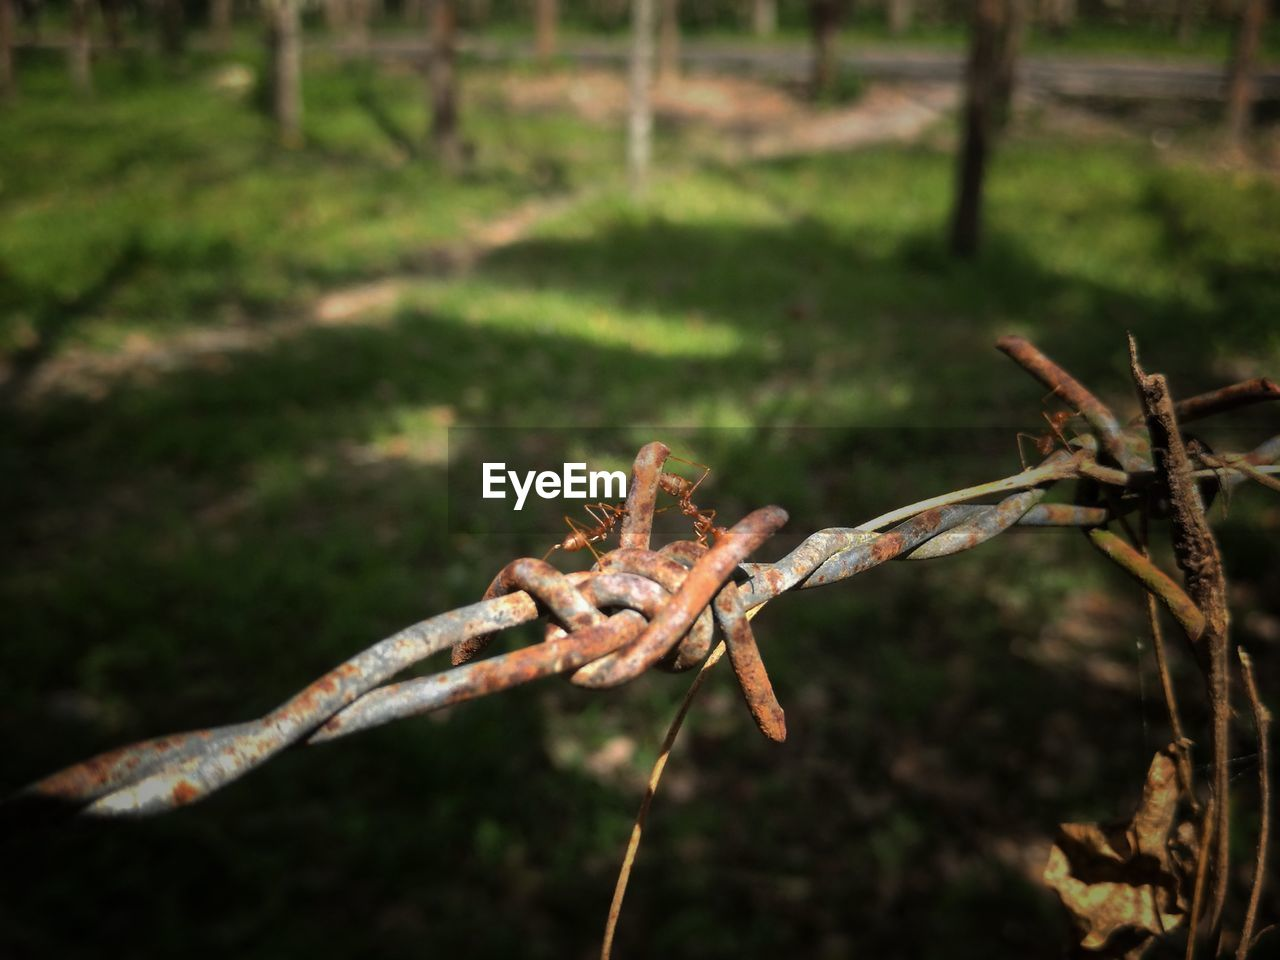 plant, focus on foreground, no people, nature, day, close-up, outdoors, tree, barbed wire, selective focus, field, land, growth, grass, protection, branch, security, sunlight, leaf, fence